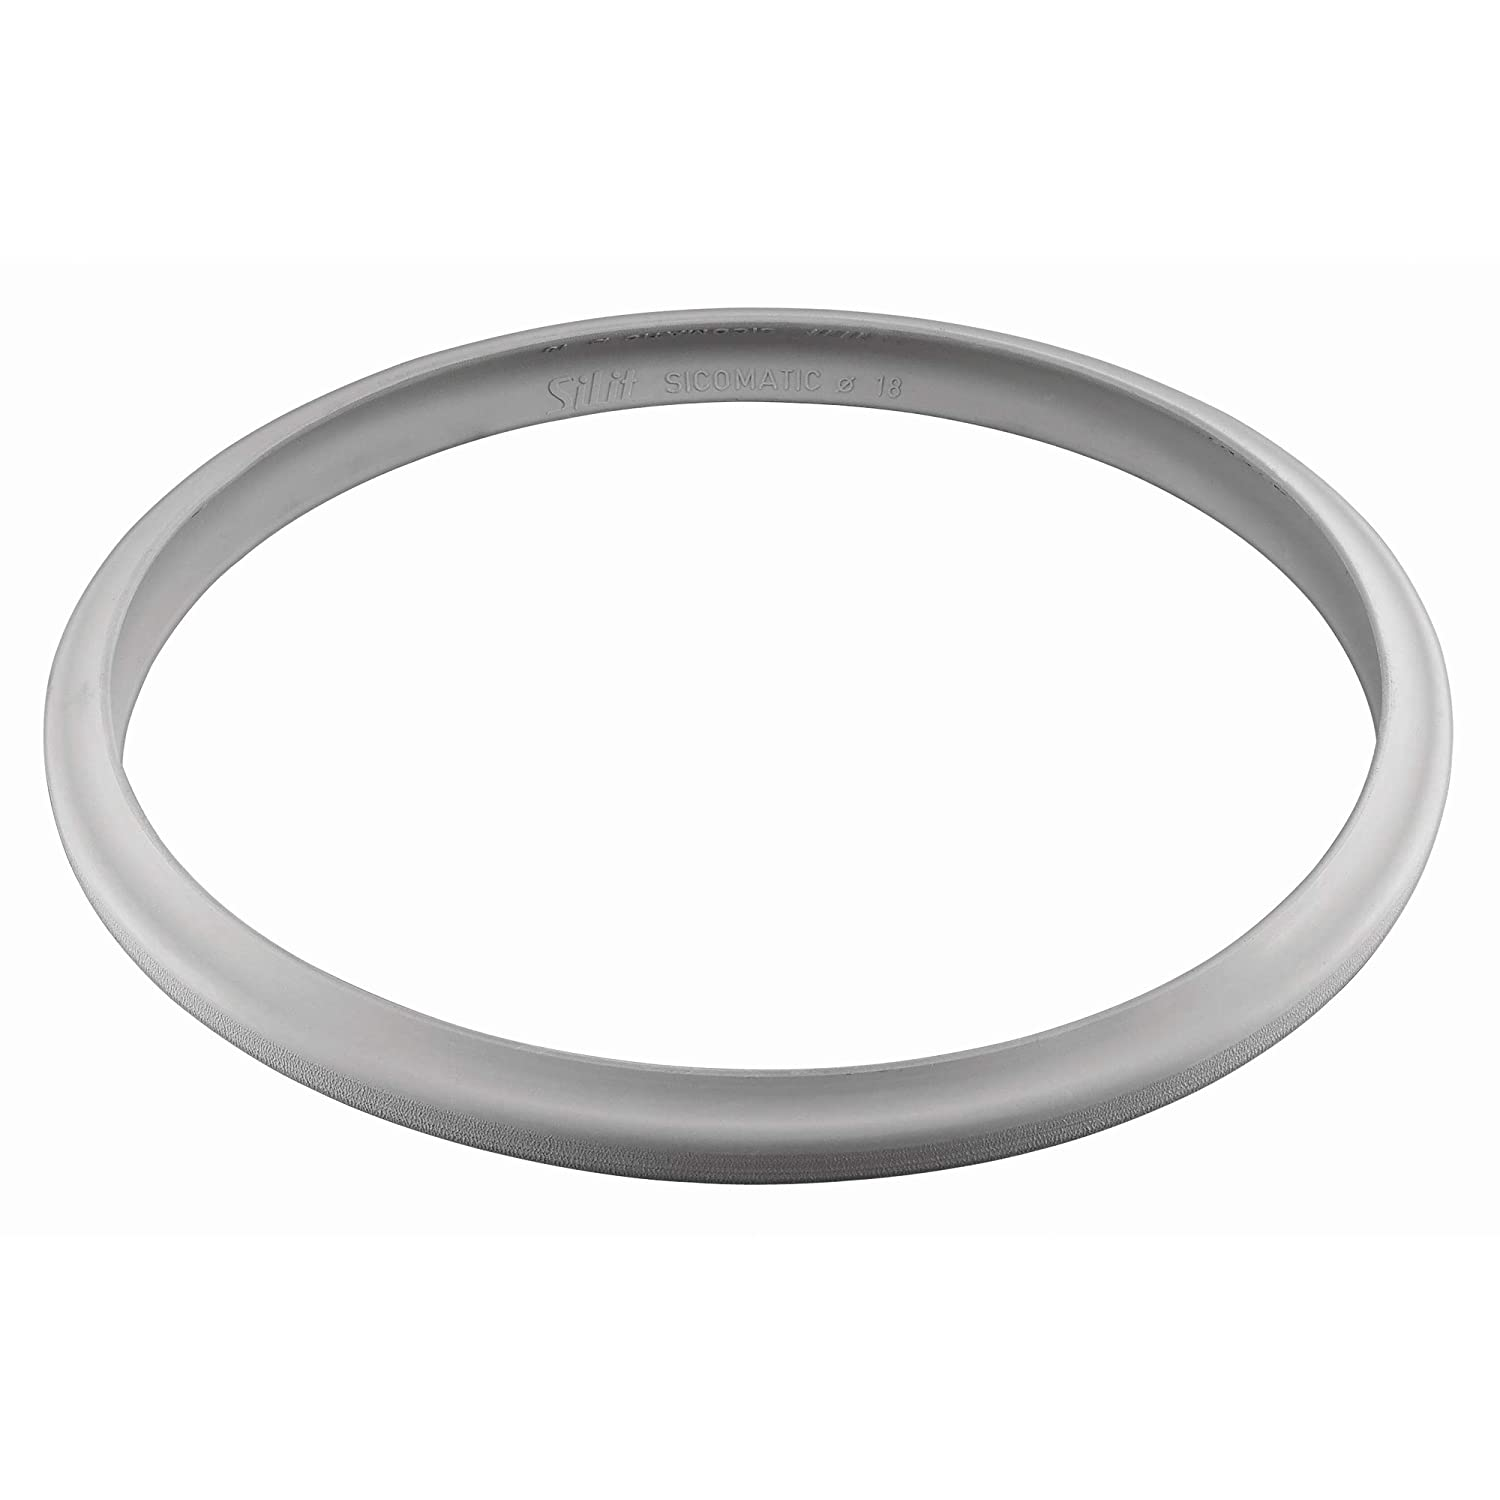 Silit Spare Part Pressure Cooker Sicomatic Silicone Rubber Ring, Transparent, 22 cm